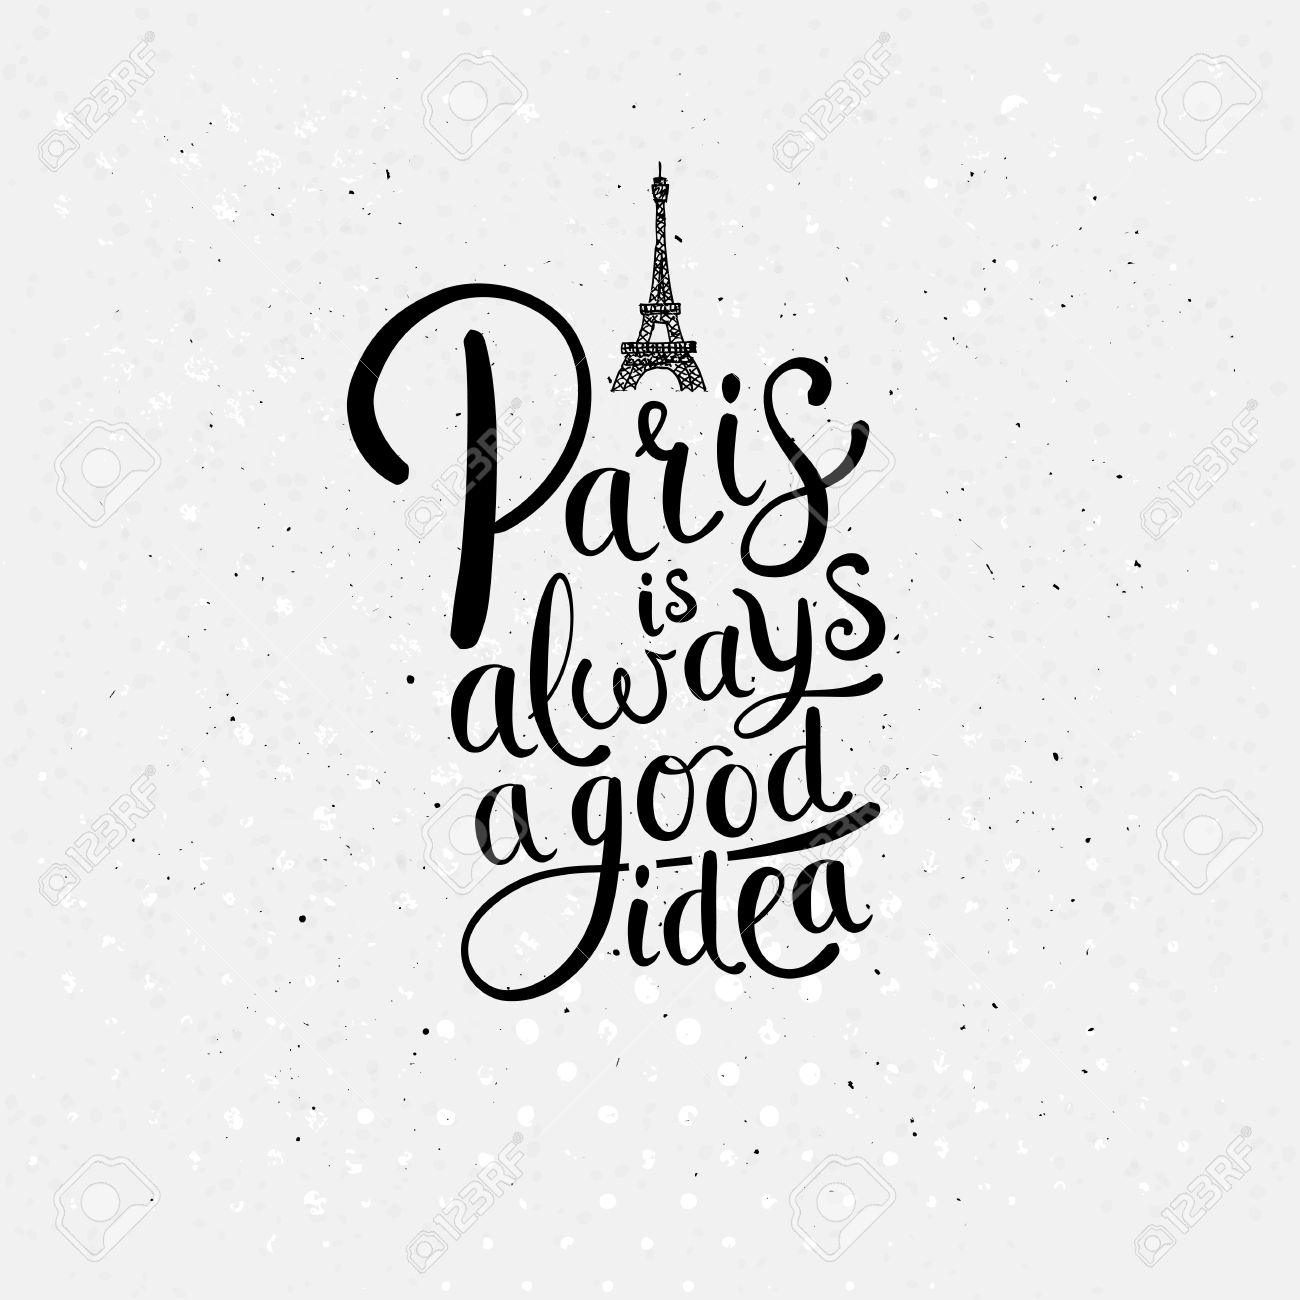 1300x1300 Simple Graphic Design For Paris Is Always A Good Idea Concept With